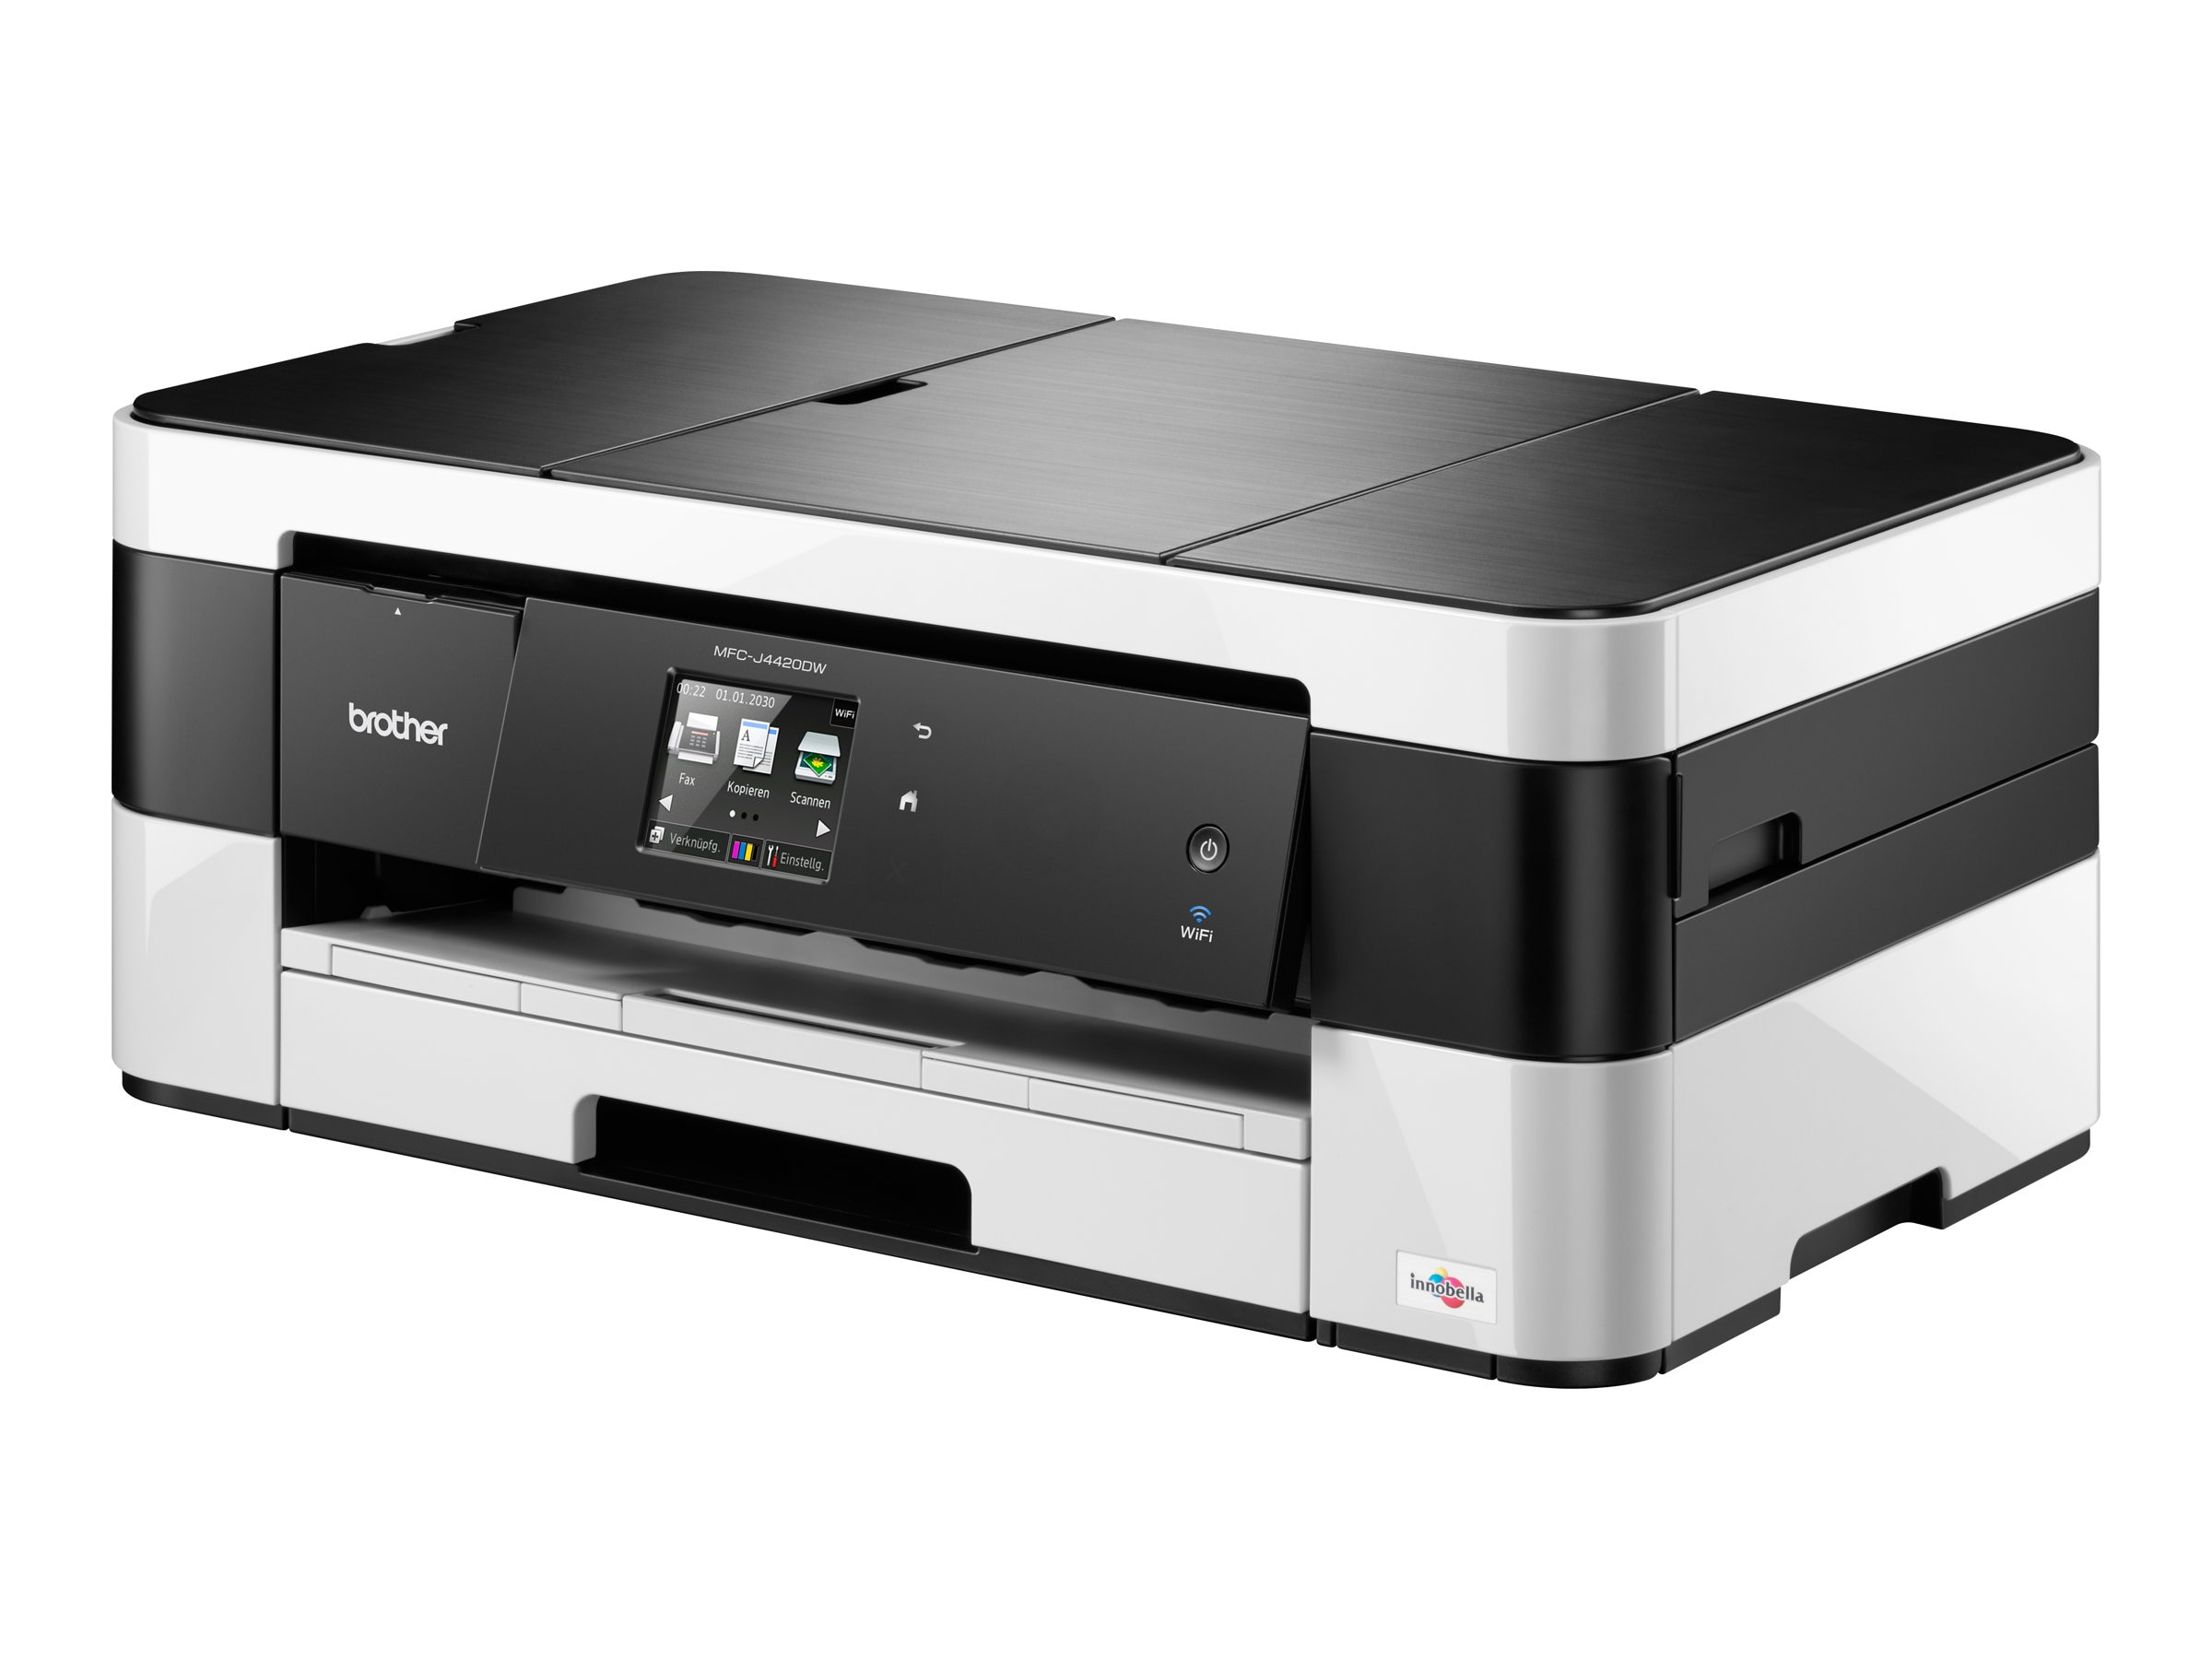 Brother MFC-J4420DW Business Smart Inkjet All-In-One, MFCJ4420DW